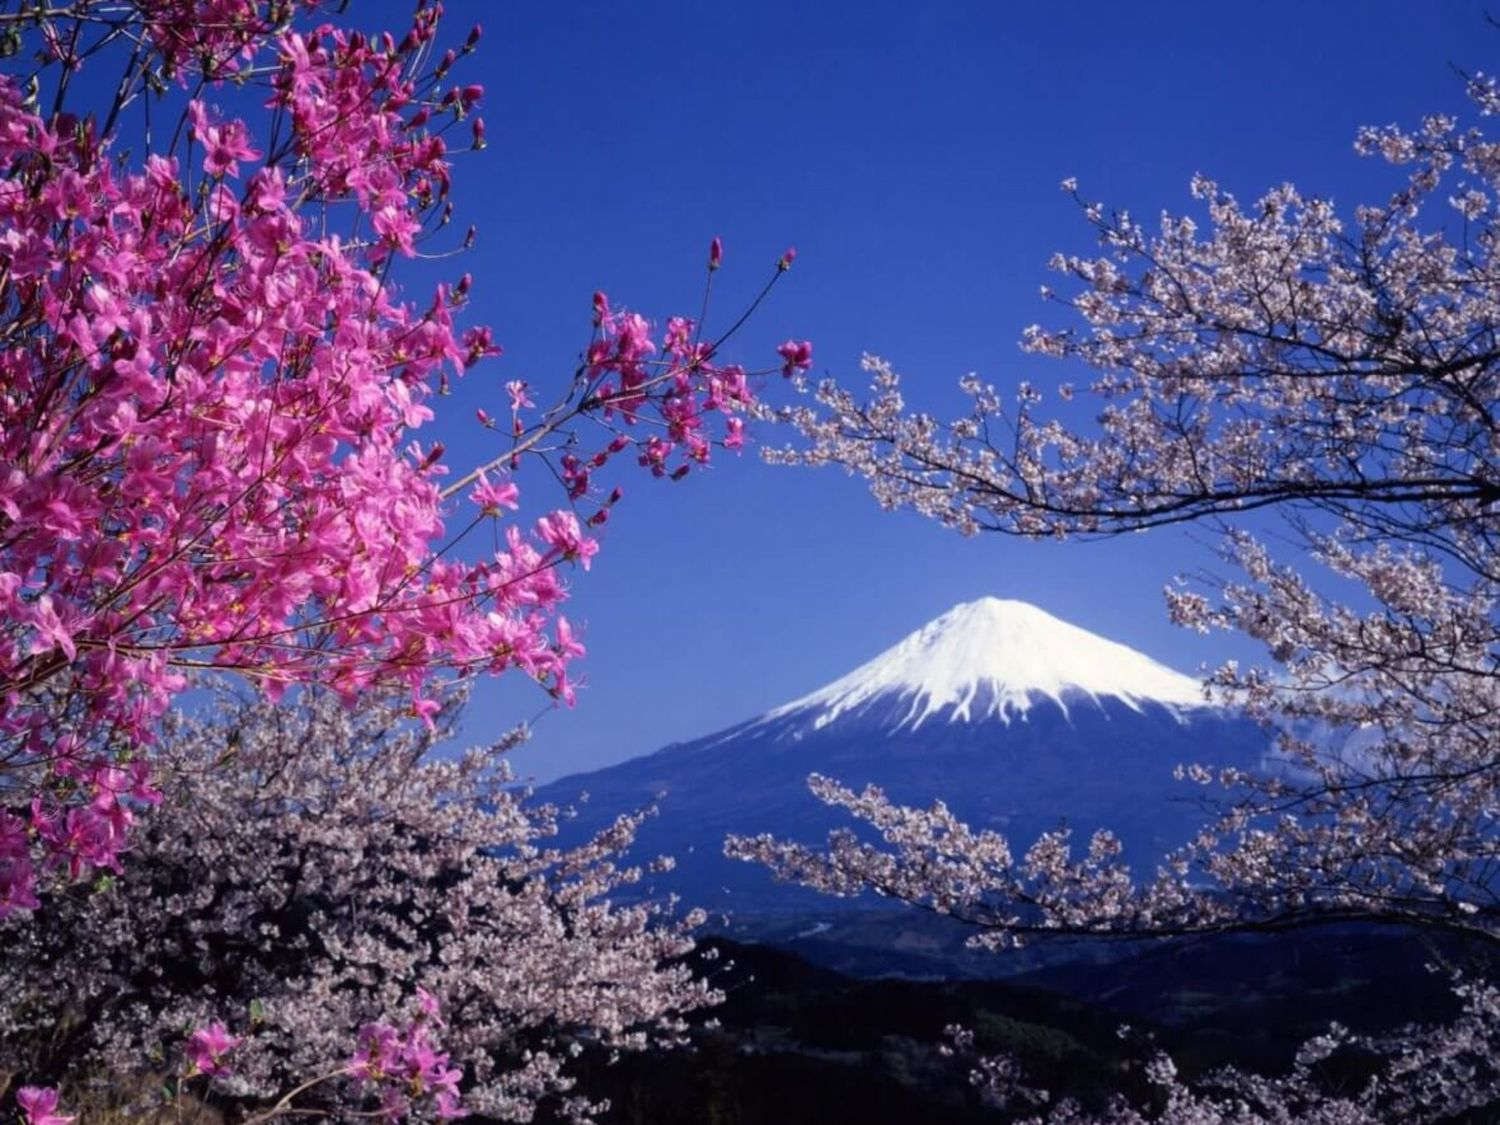 Ninja, manga and cherry blossoms: Voyagin connects international travelers with Japanese cultural experiences online